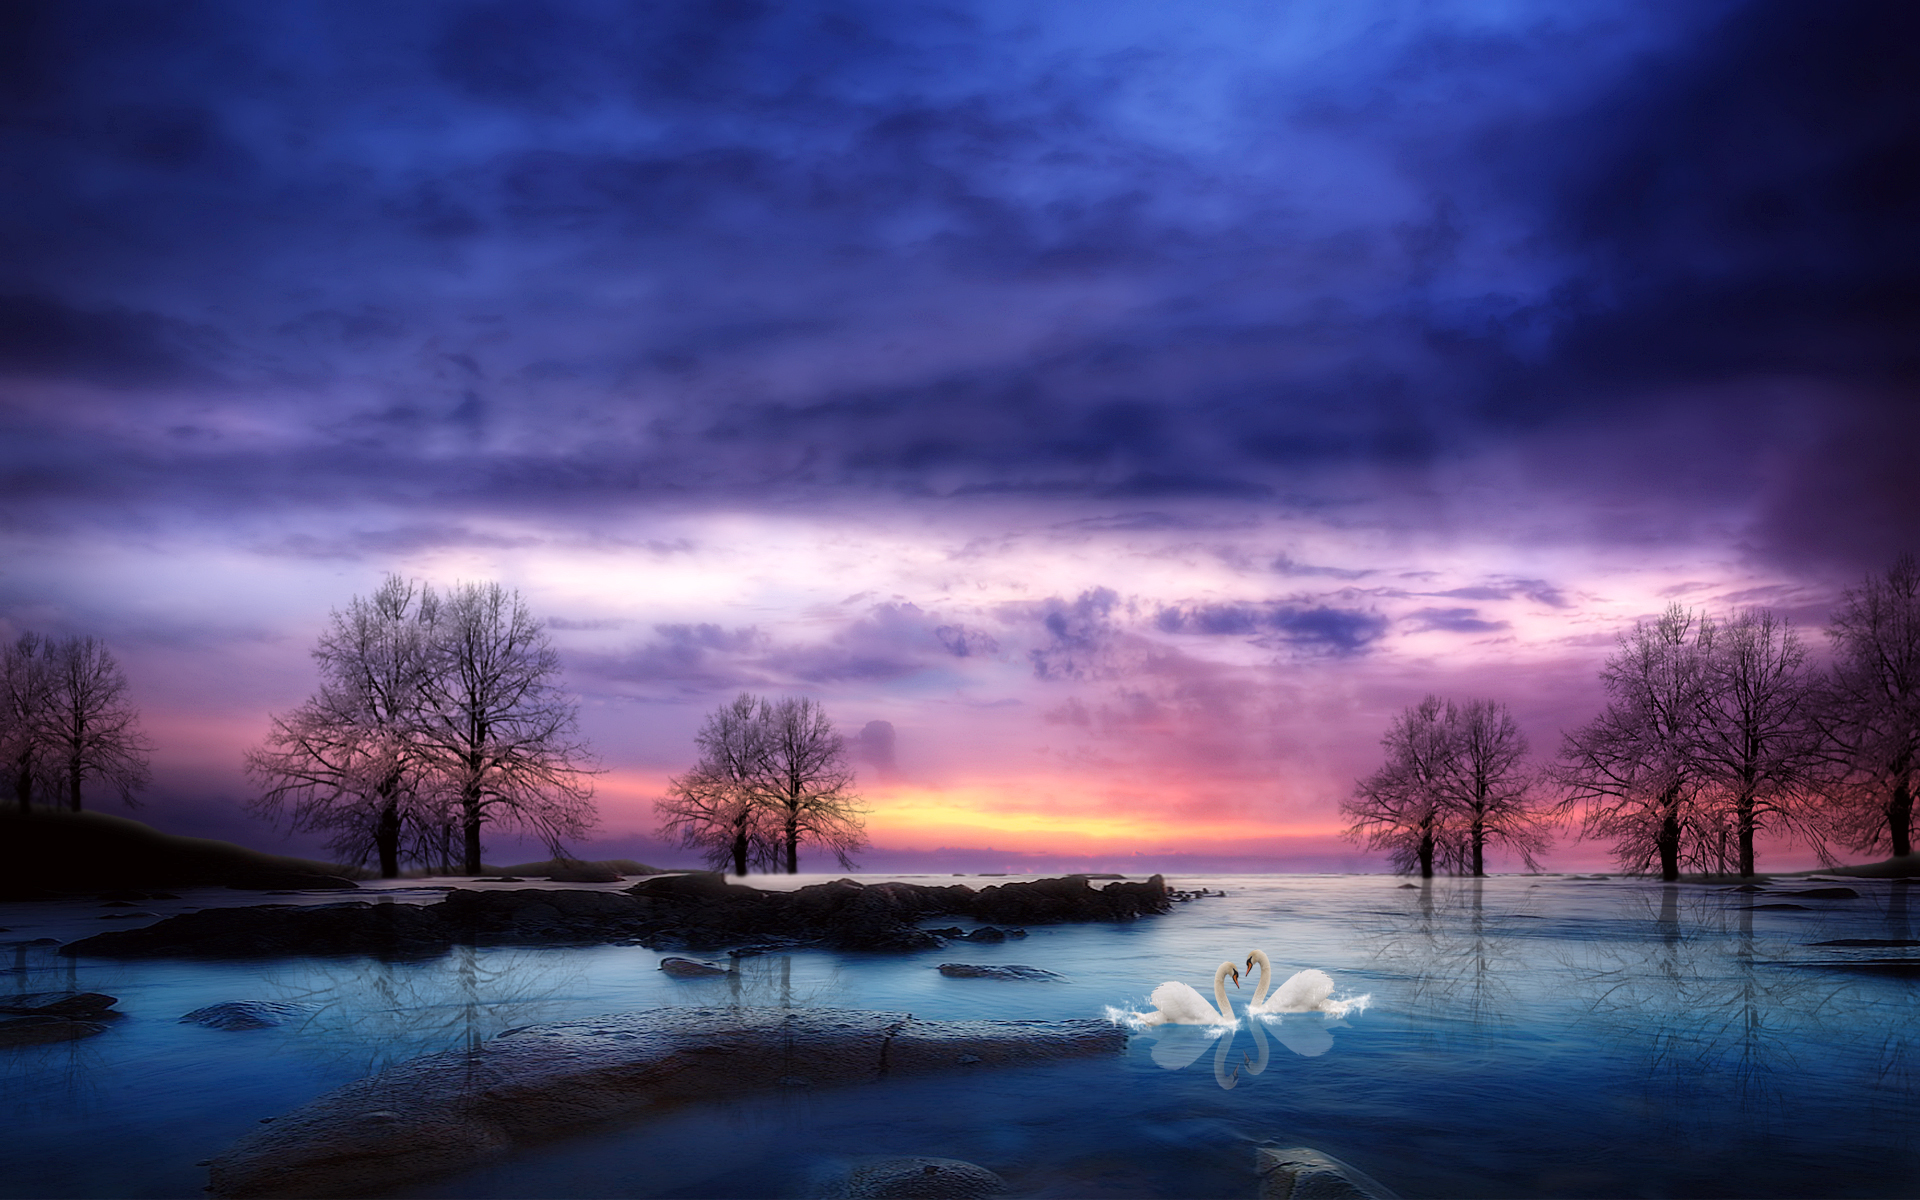 HQ Tranquil Wallpapers   File 1698.23Kb